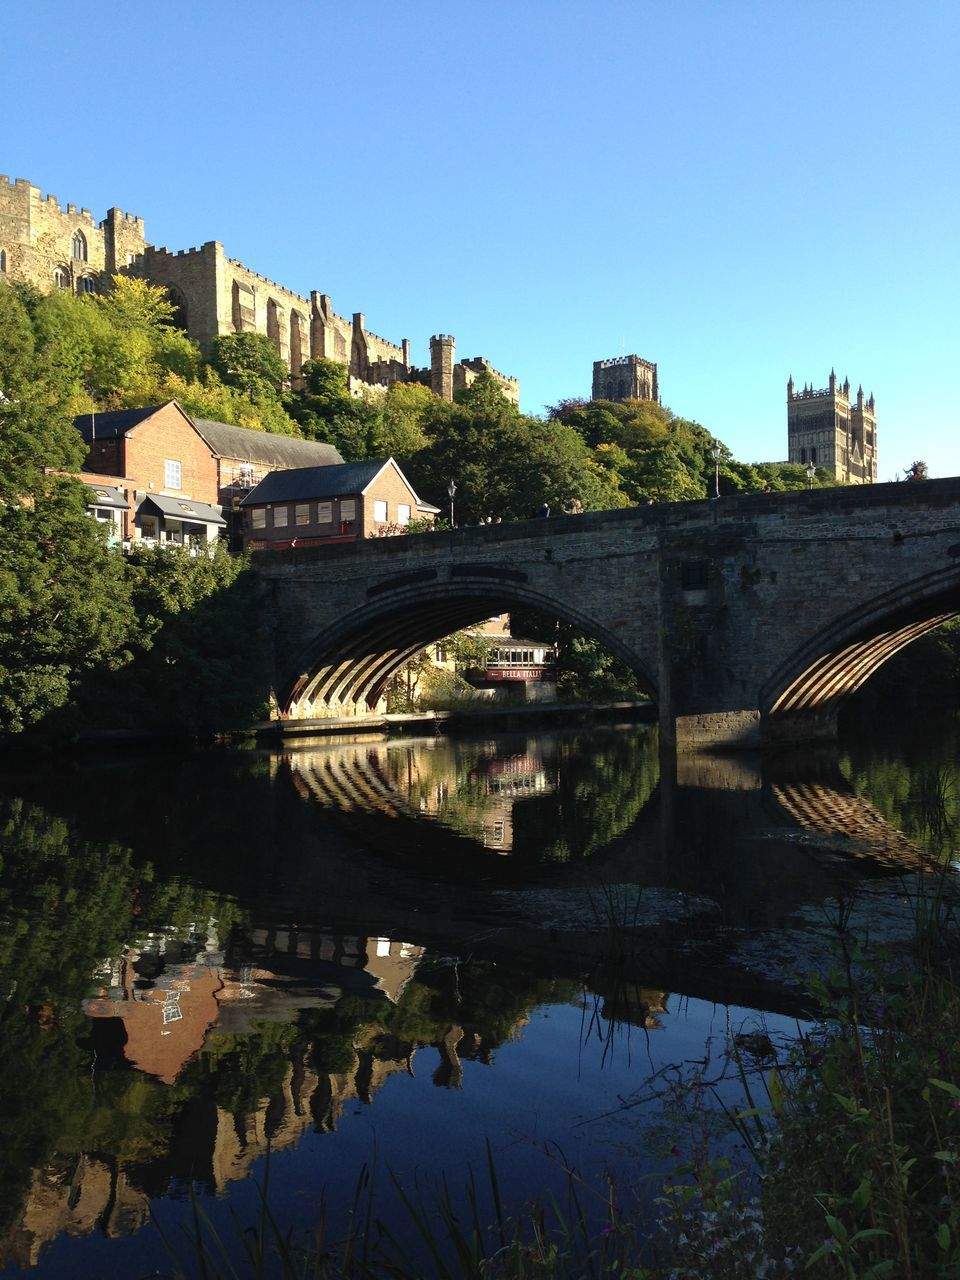 Arch Bridge Over River By Durham Cathedral Against Clear Sky